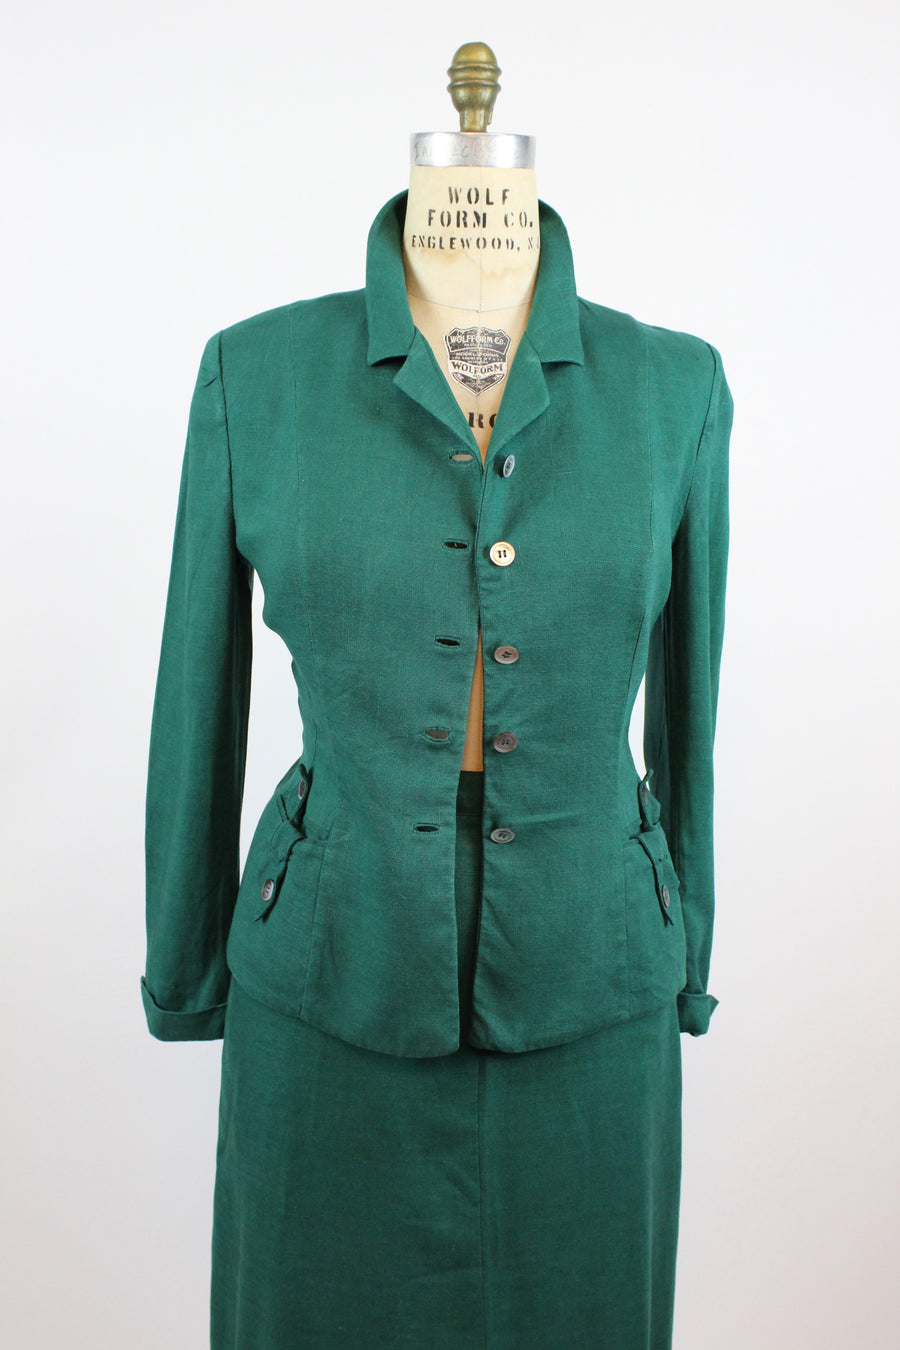 1940's green linen suit medium | vintage Nat Gaynes jacket and skirt | new fall